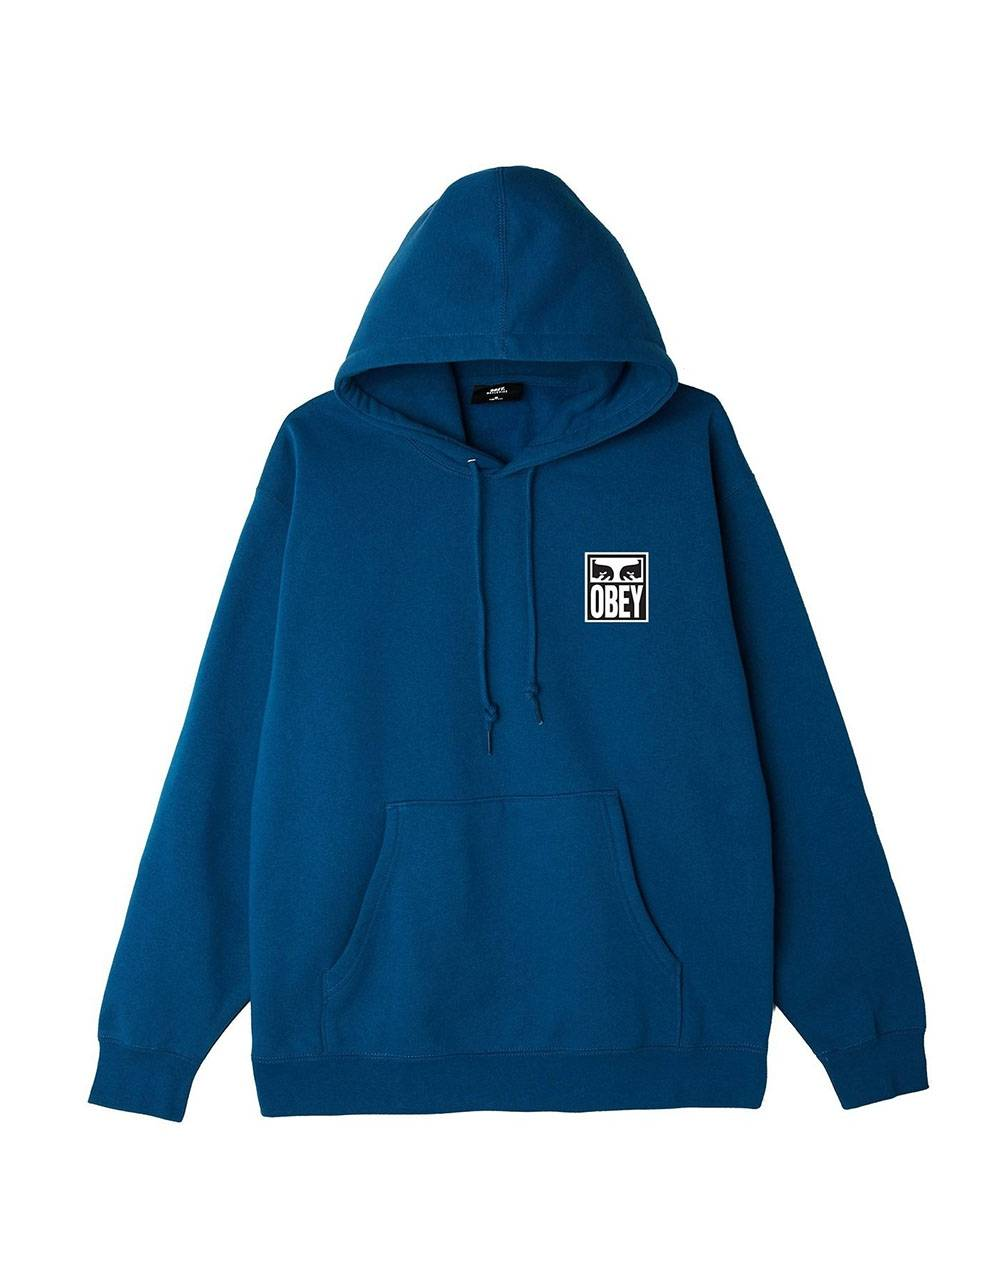 Obey eyes icon II premium hoodie - blue sapphire obey Sweater 81,15 €